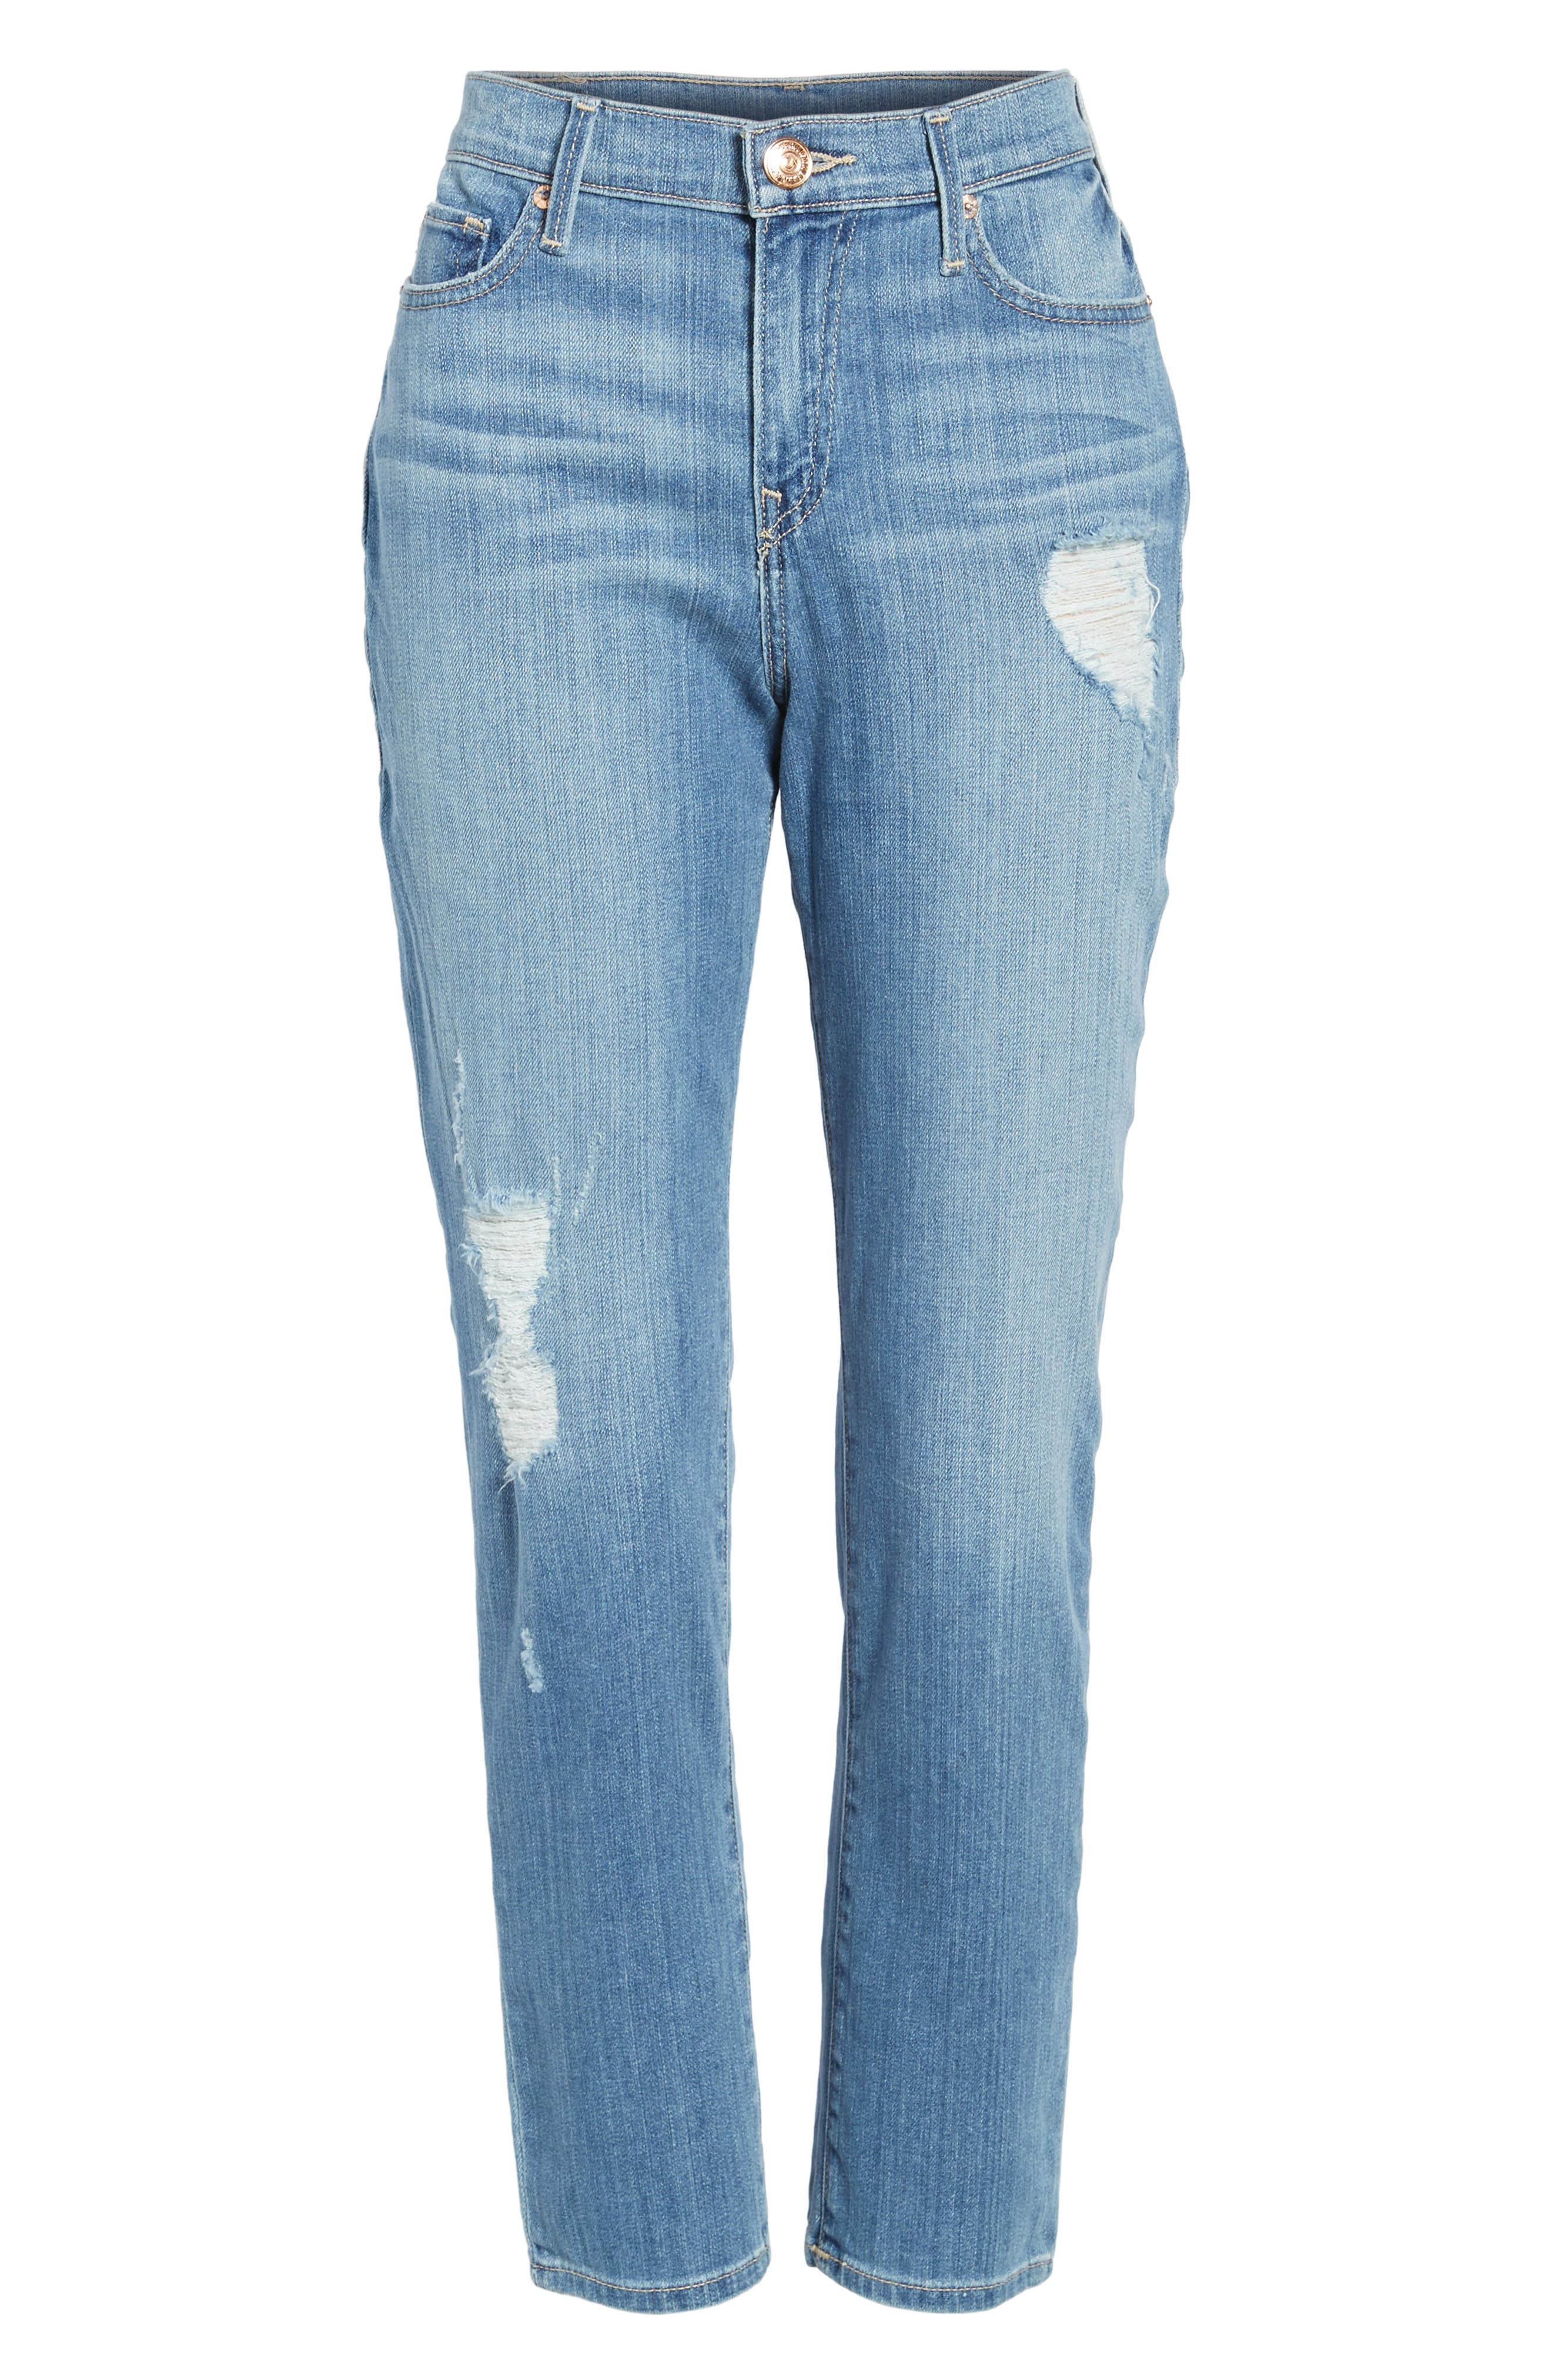 Colette High Waist Tapered Skinny Jeans,                             Main thumbnail 1, color,                             Waterfall Ridge